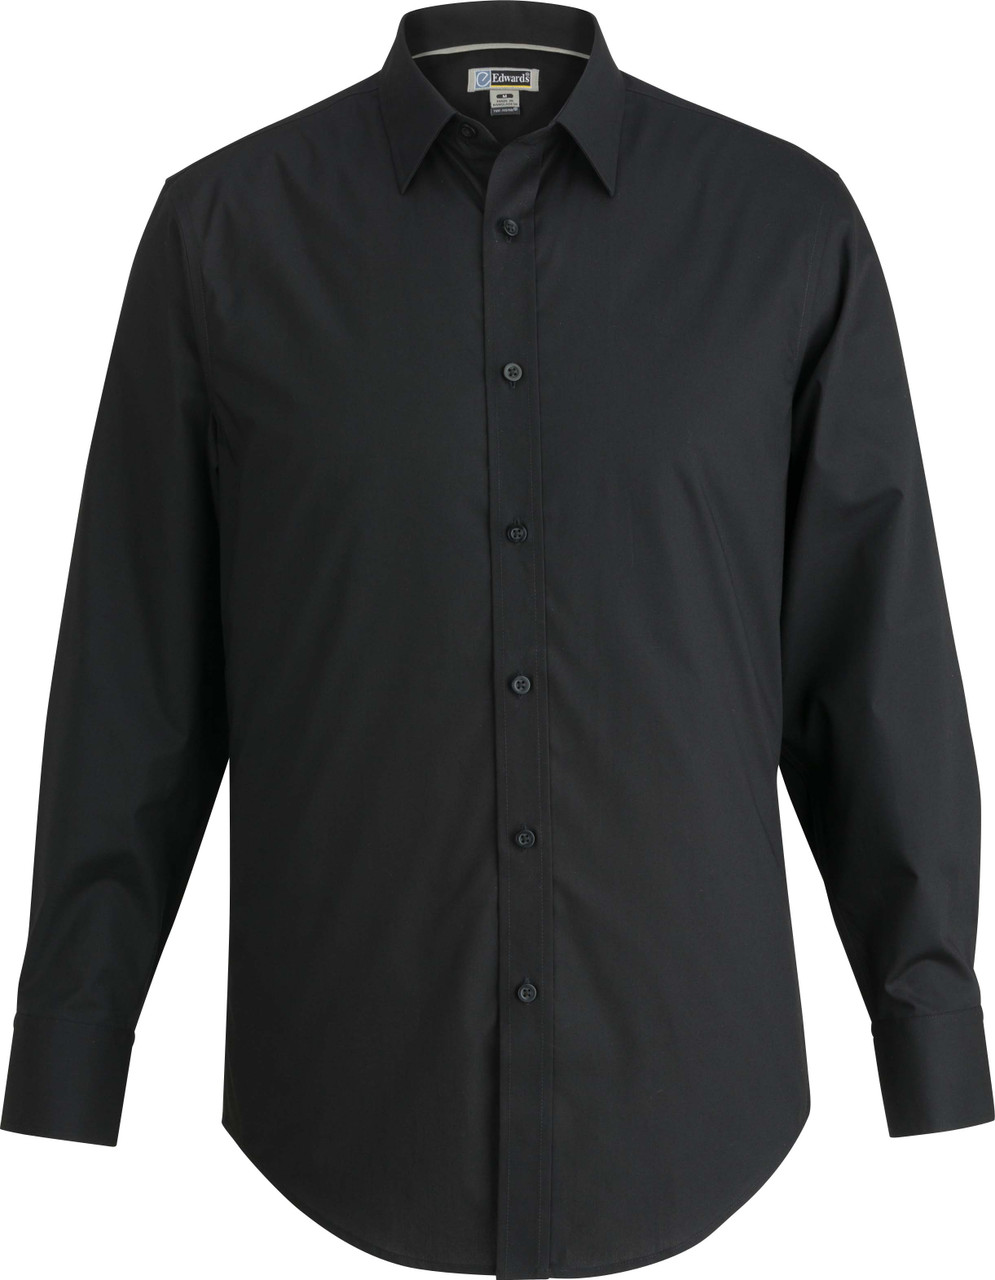 Men's No Iron Stretch Broadcloth Uniform Shirt